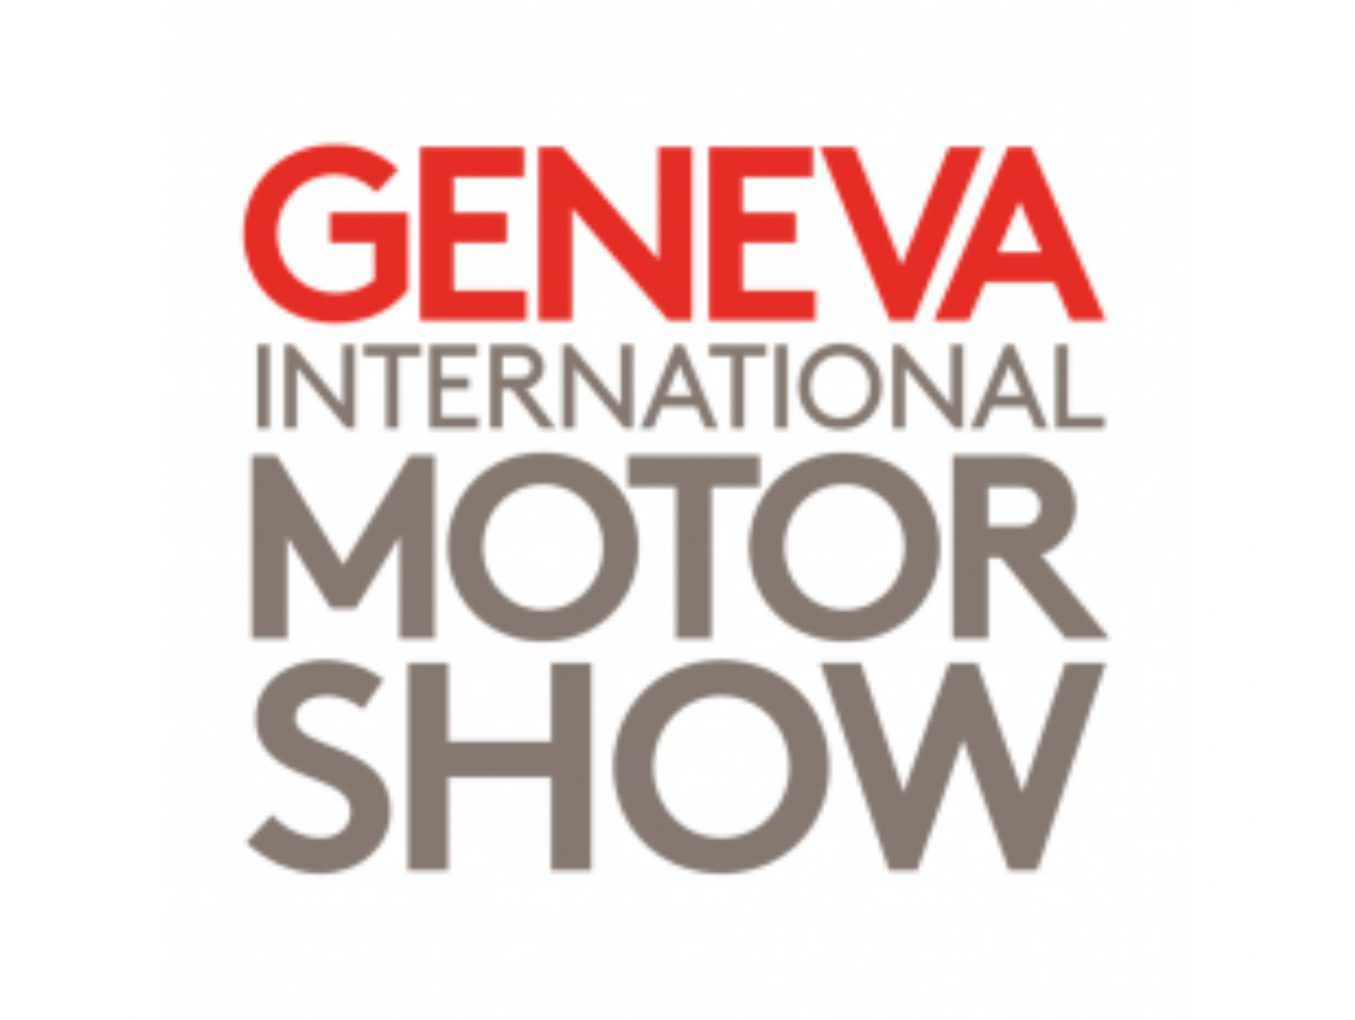 Special offer Geneva Motorshow 2019